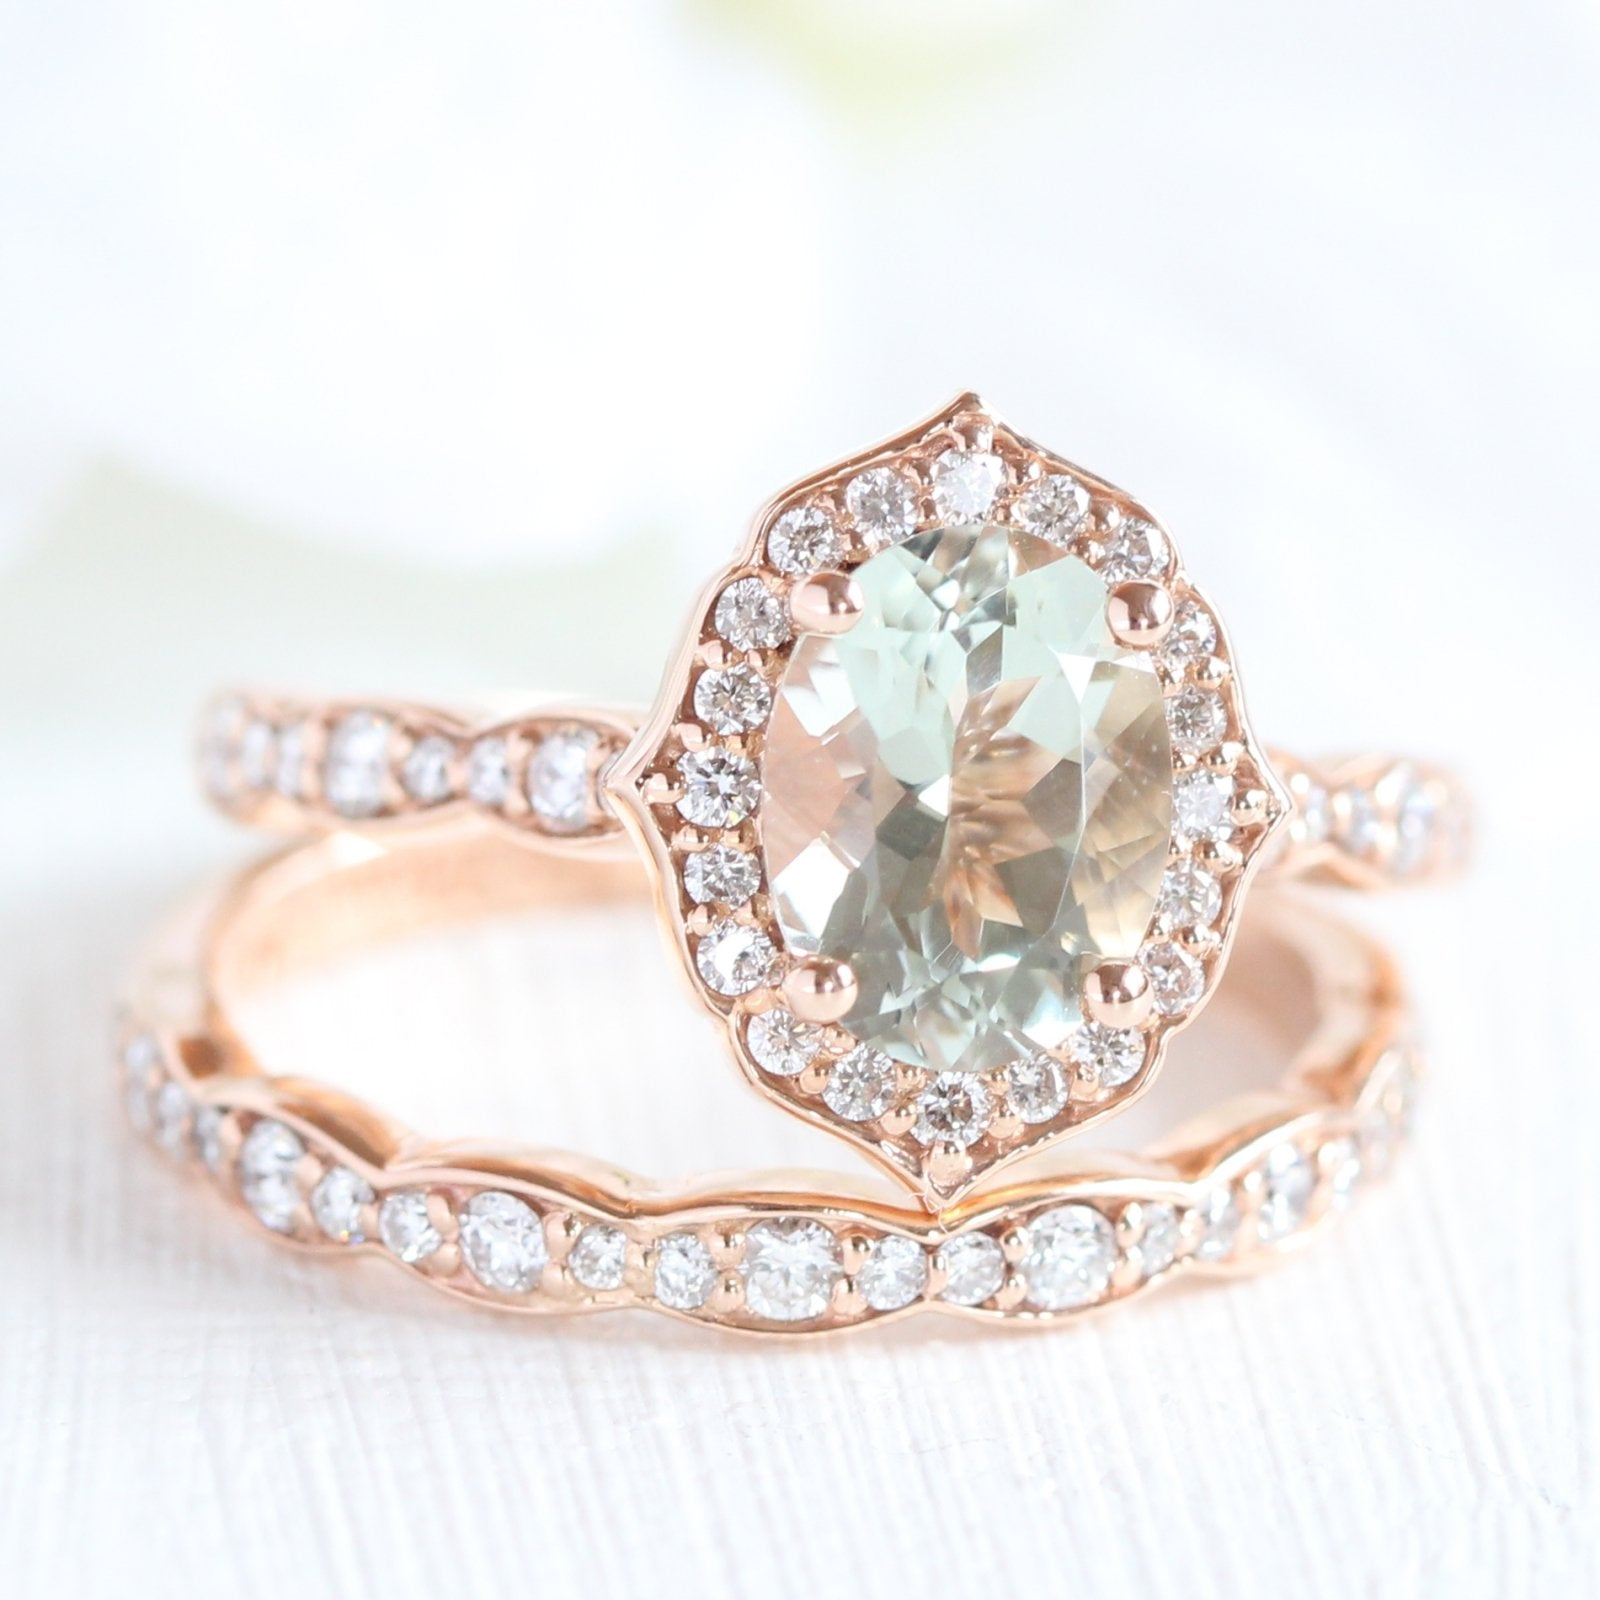 Oval Vintage Floral Bridal Set In Scalloped Band W Green Amethyst